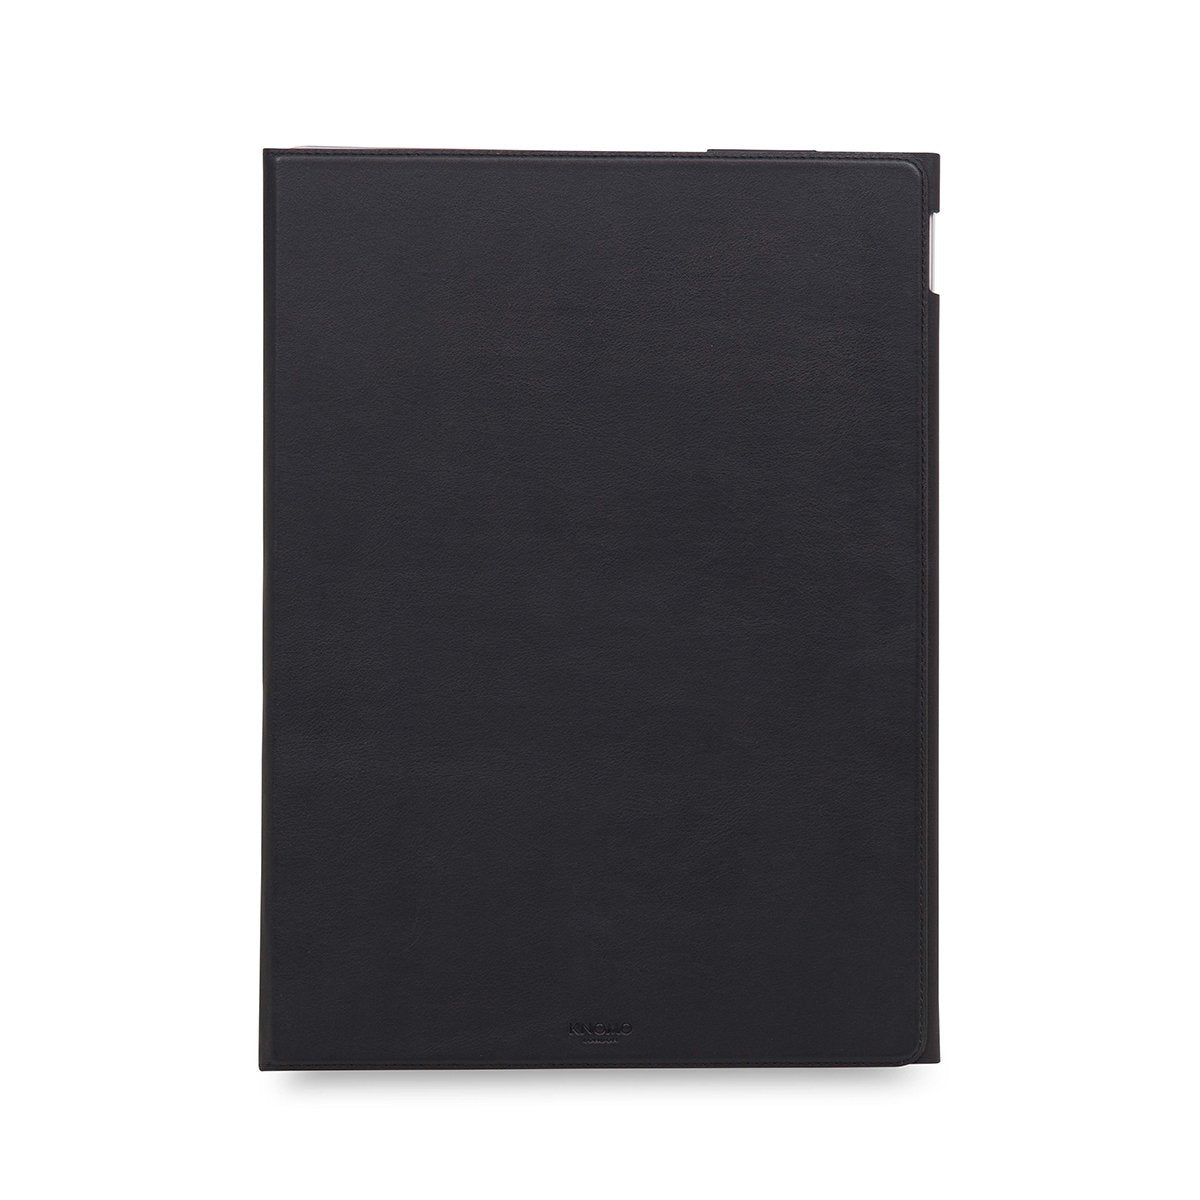 Ipad air 92 082 blk front